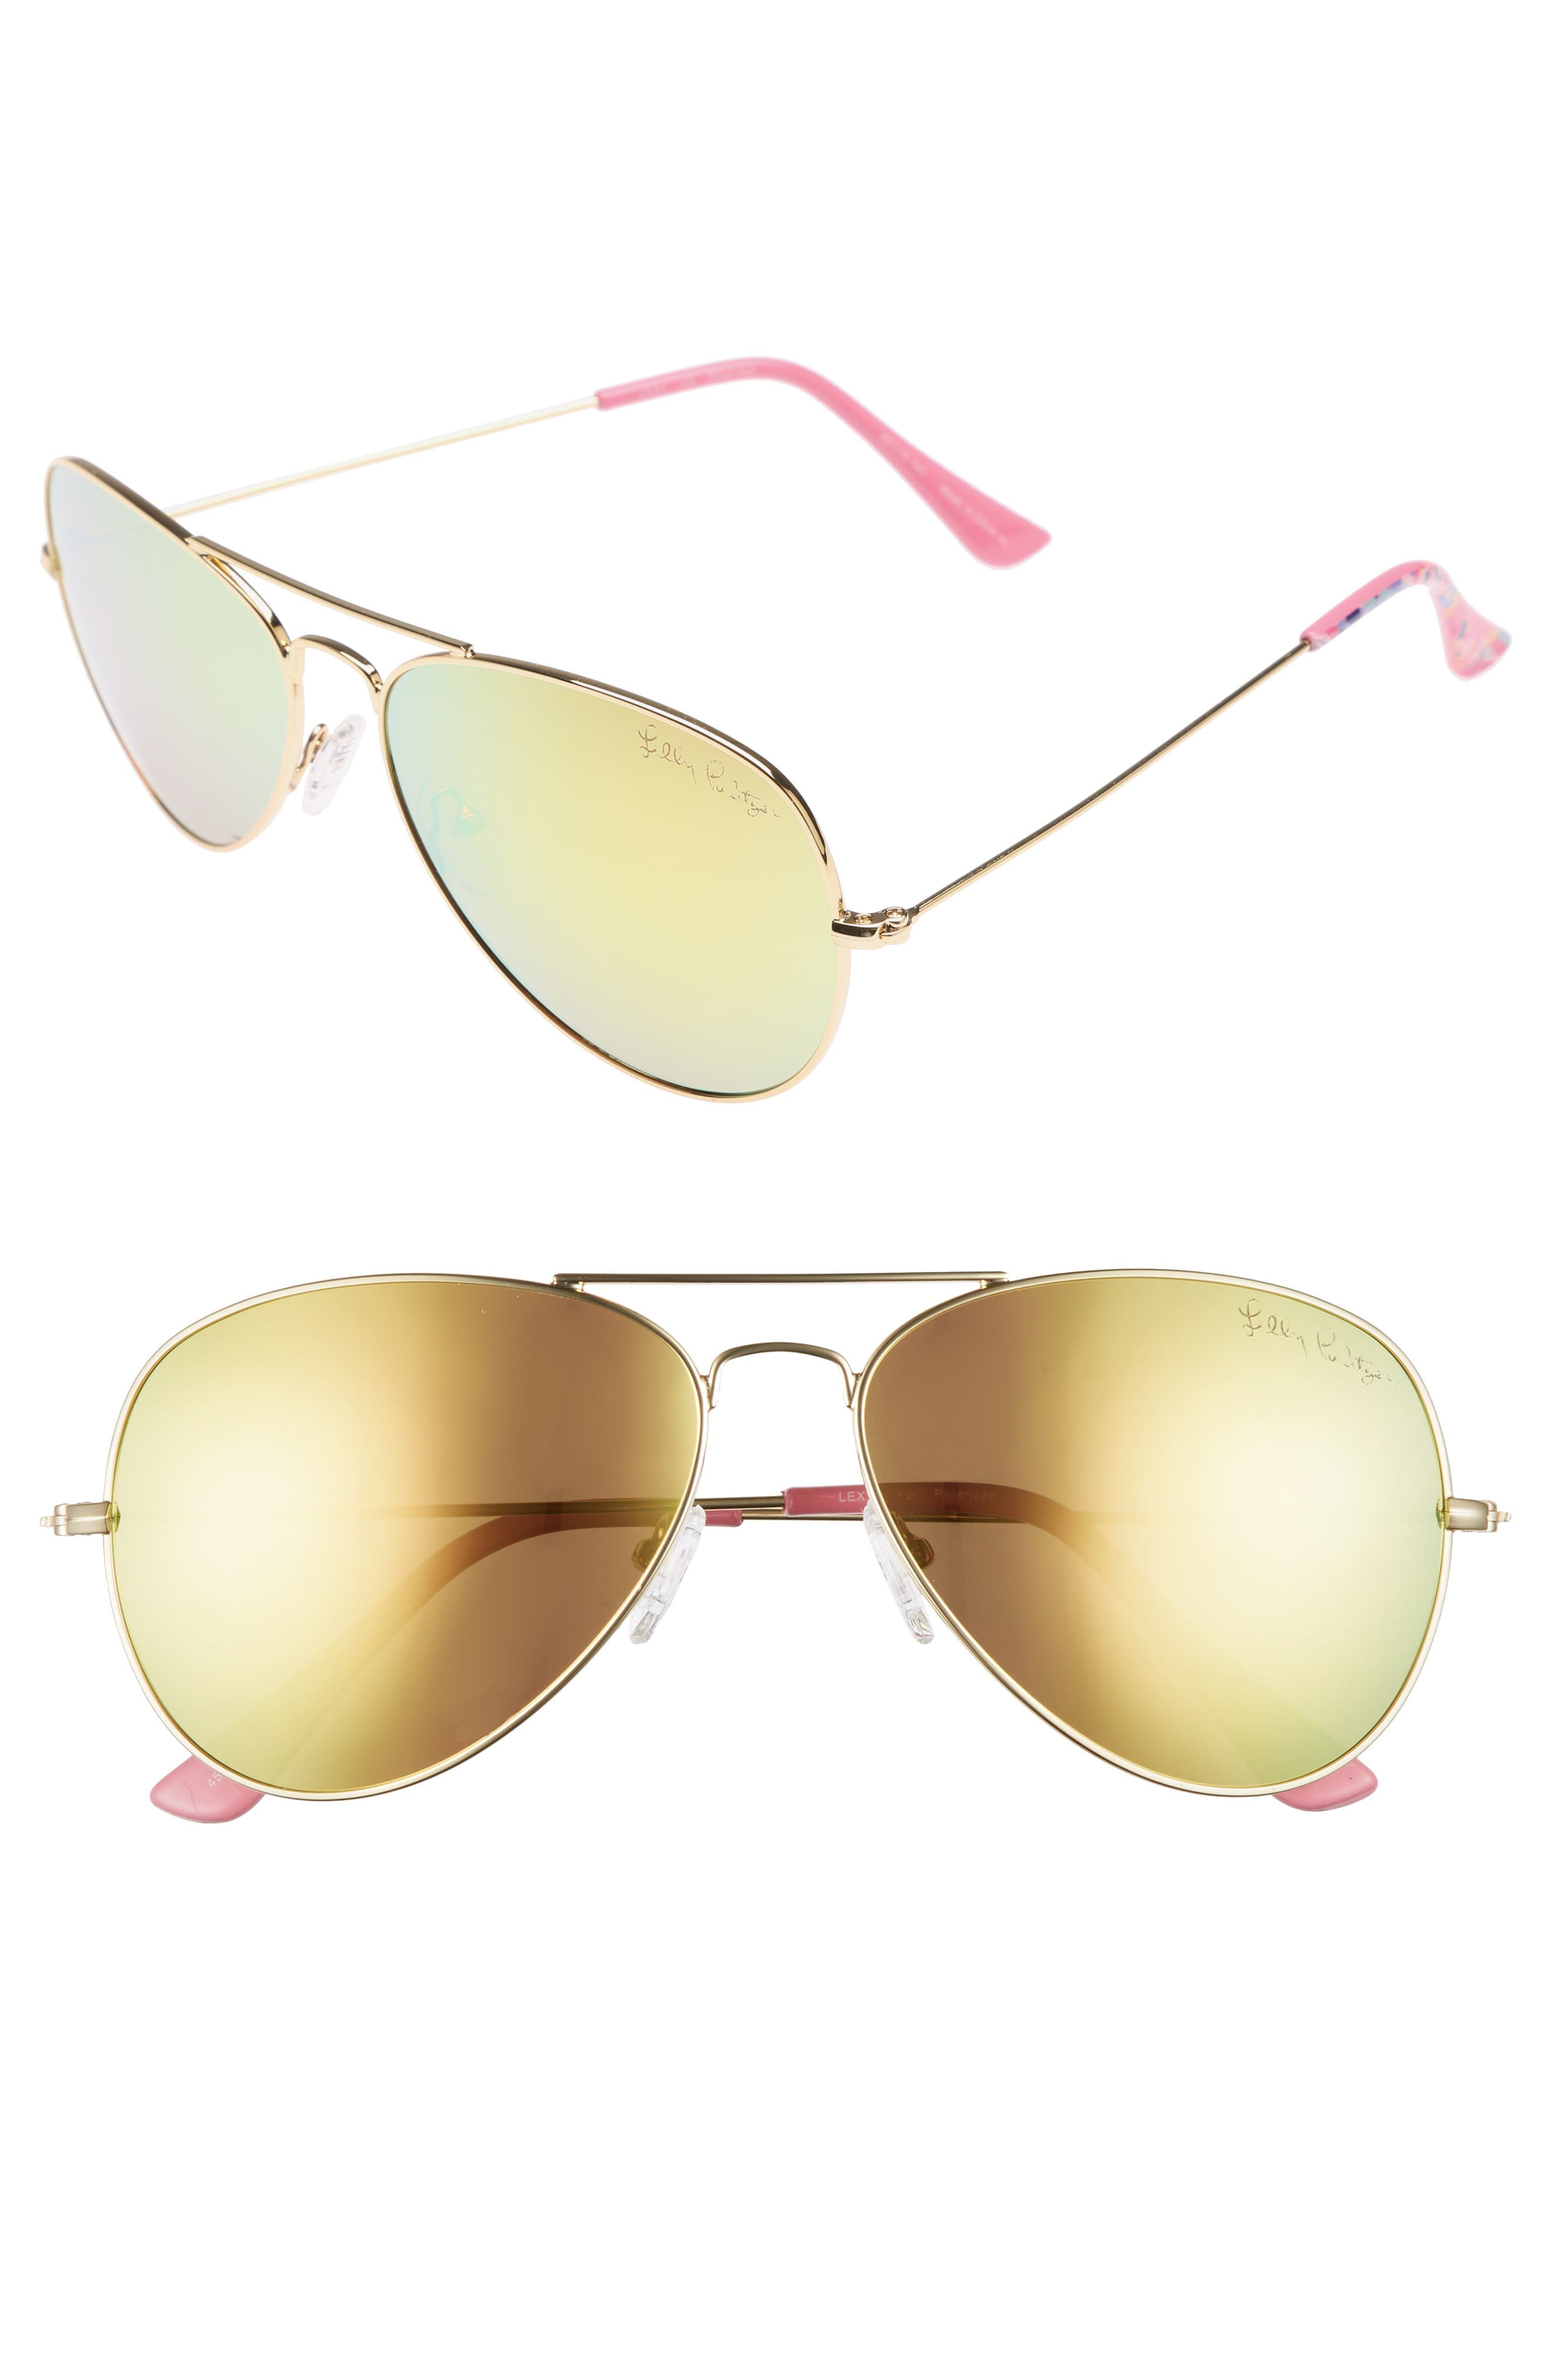 Lexy 59mm Polarized Aviator Sunglasses,                         Main,                         color, Pink